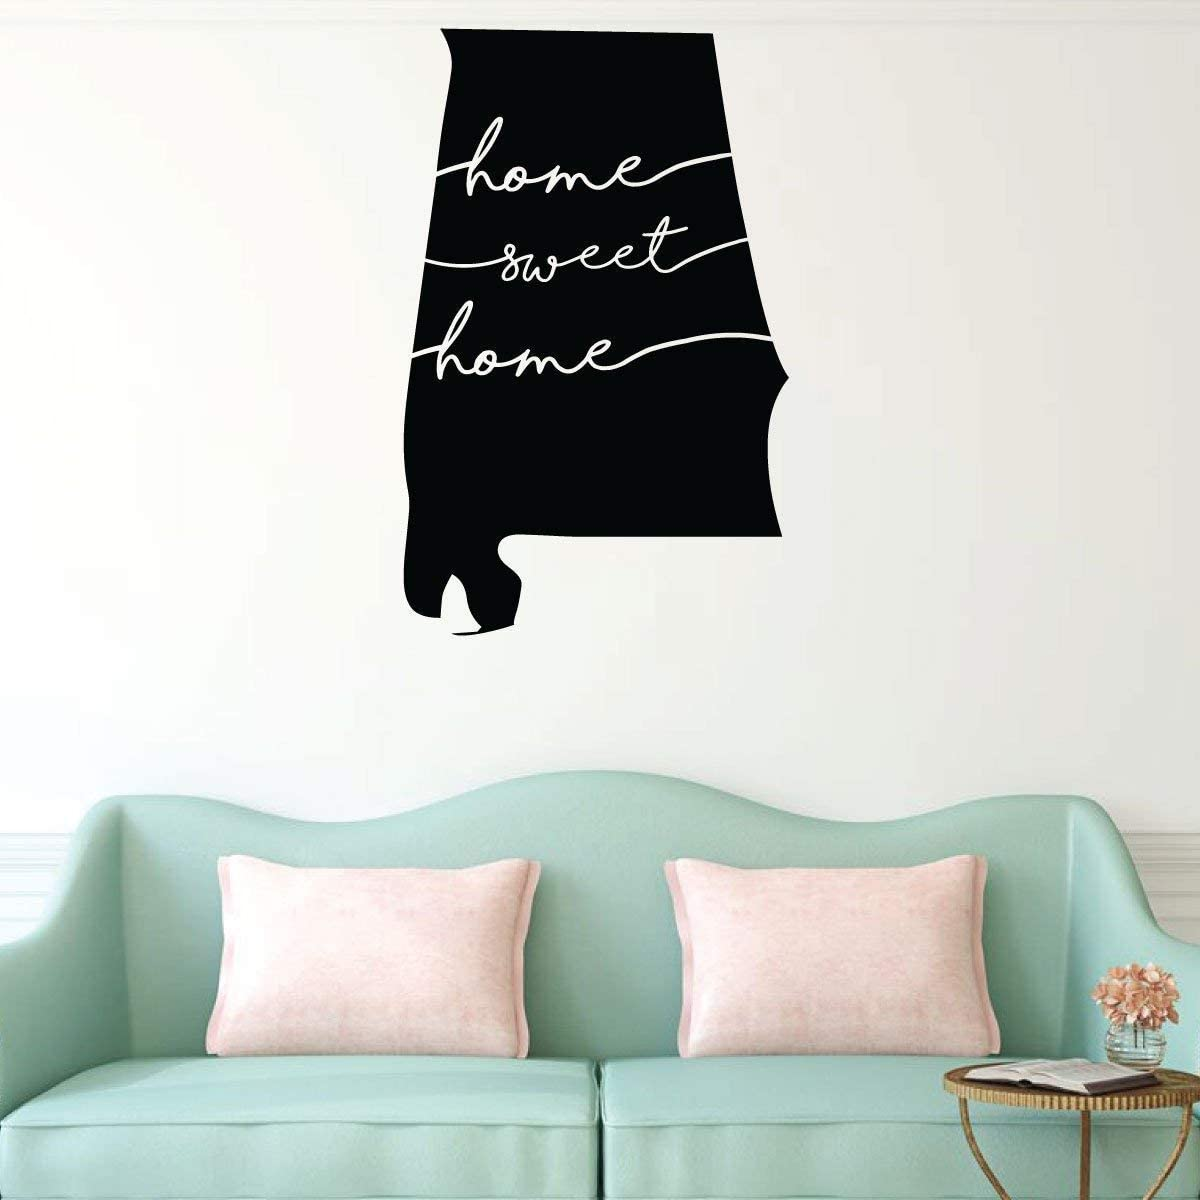 Tamengi Home Sweet Home Alabama Wall Decal - State Silhouette Vinyl Art for Home Decor, Living Room or Family Room Decoration 15.7